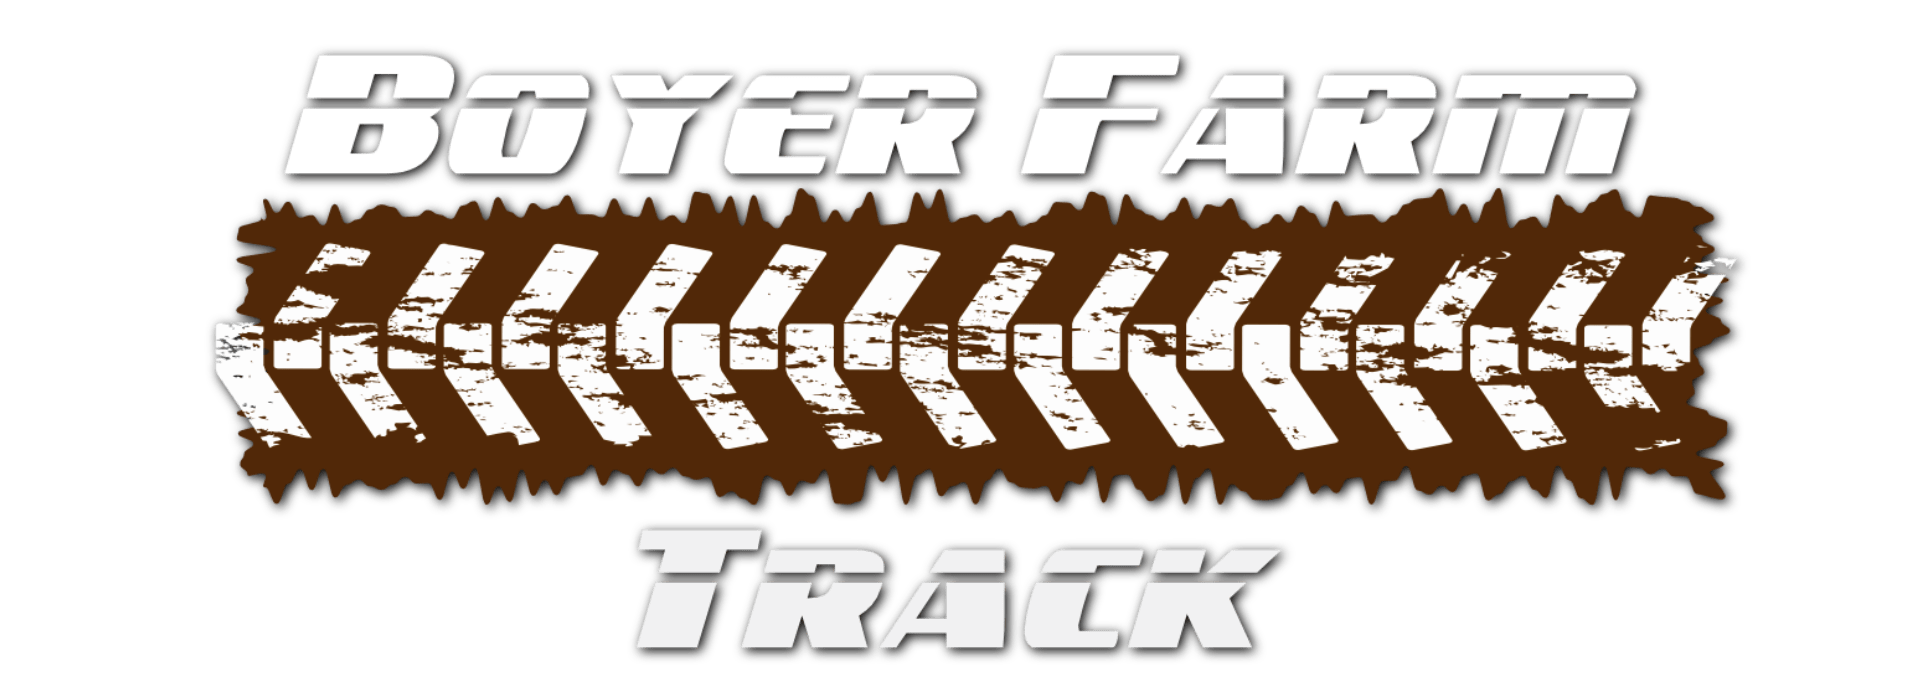 Boyer Farm Track